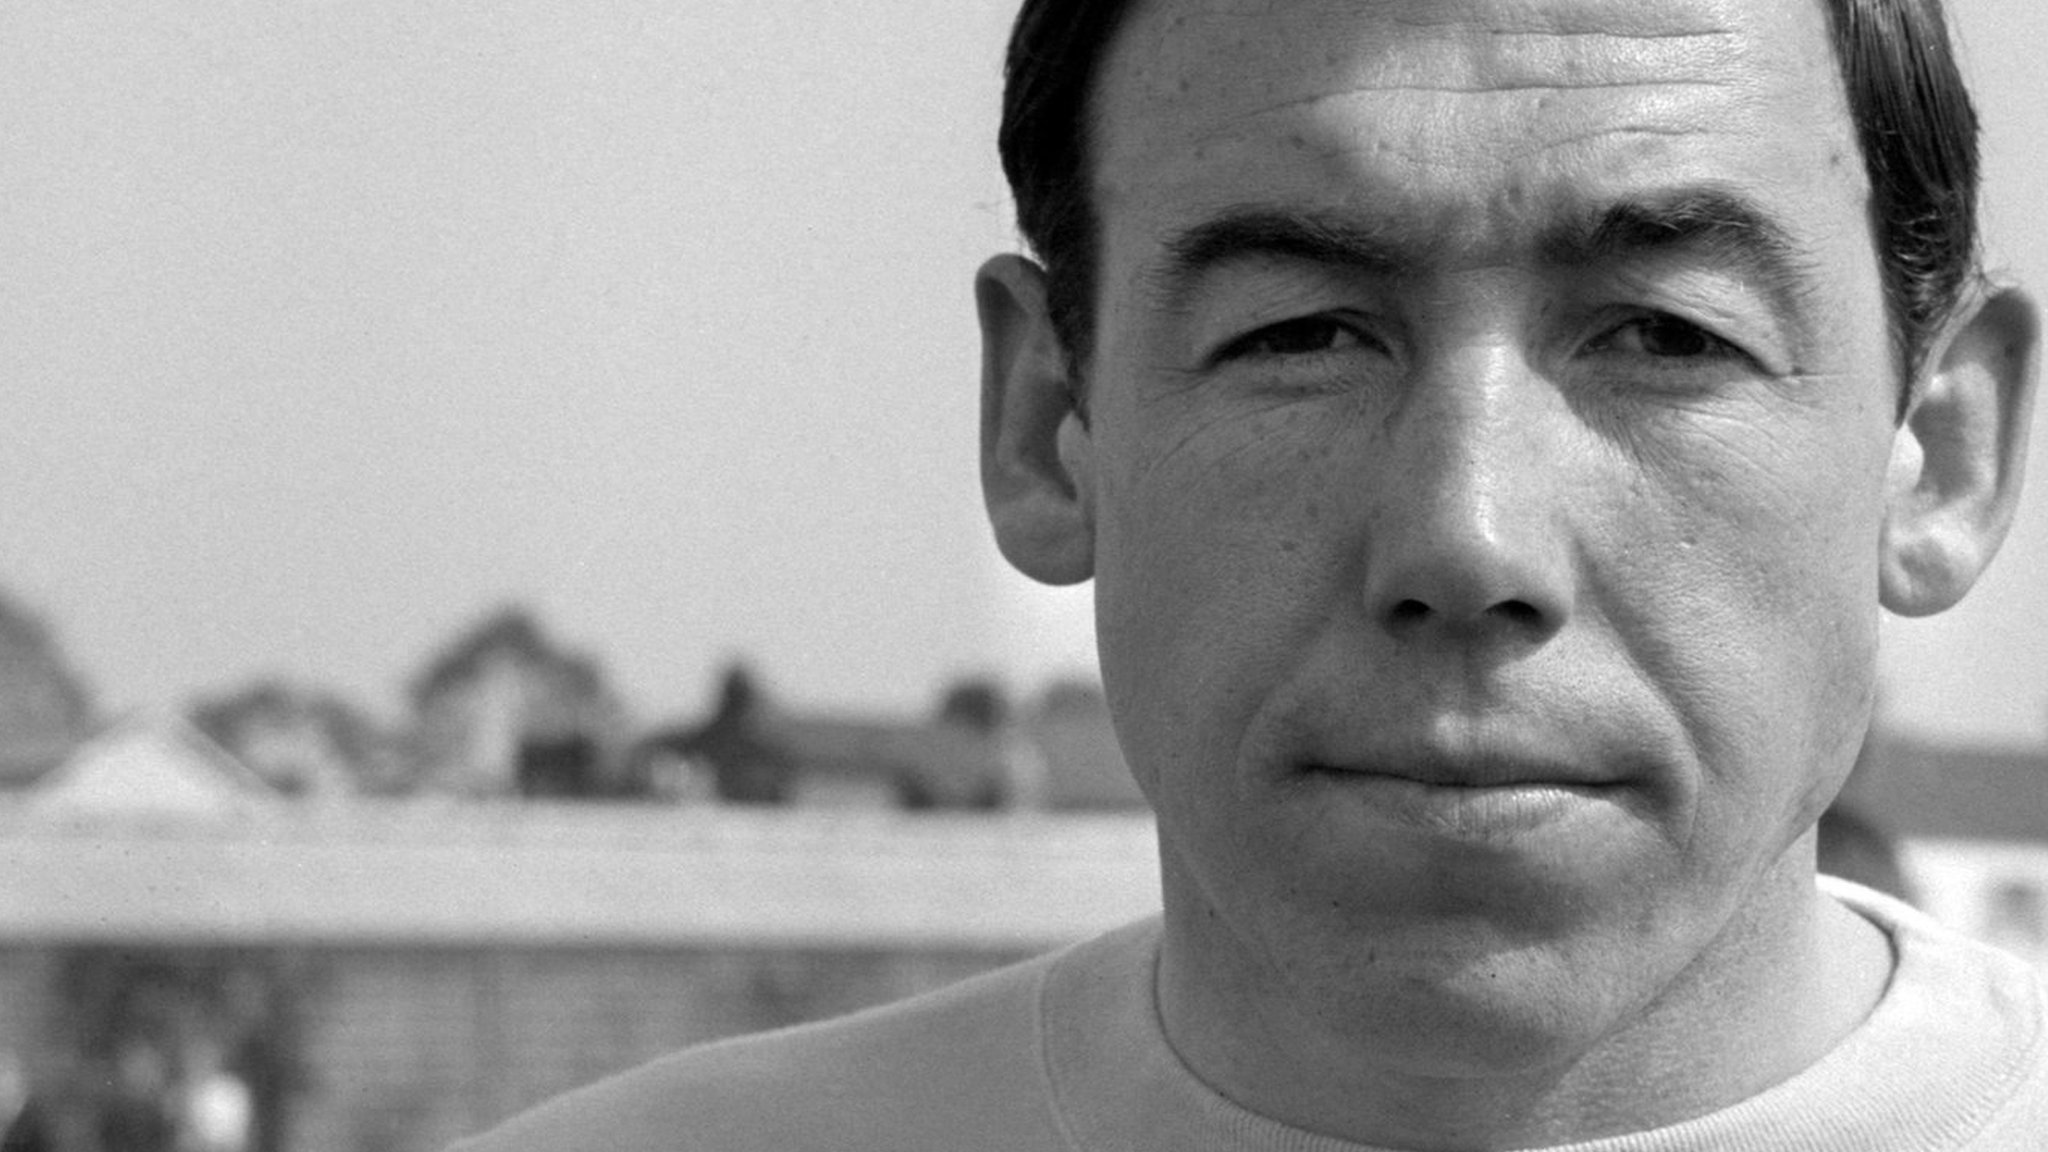 'One of the greatest' - Gordon Banks obituary